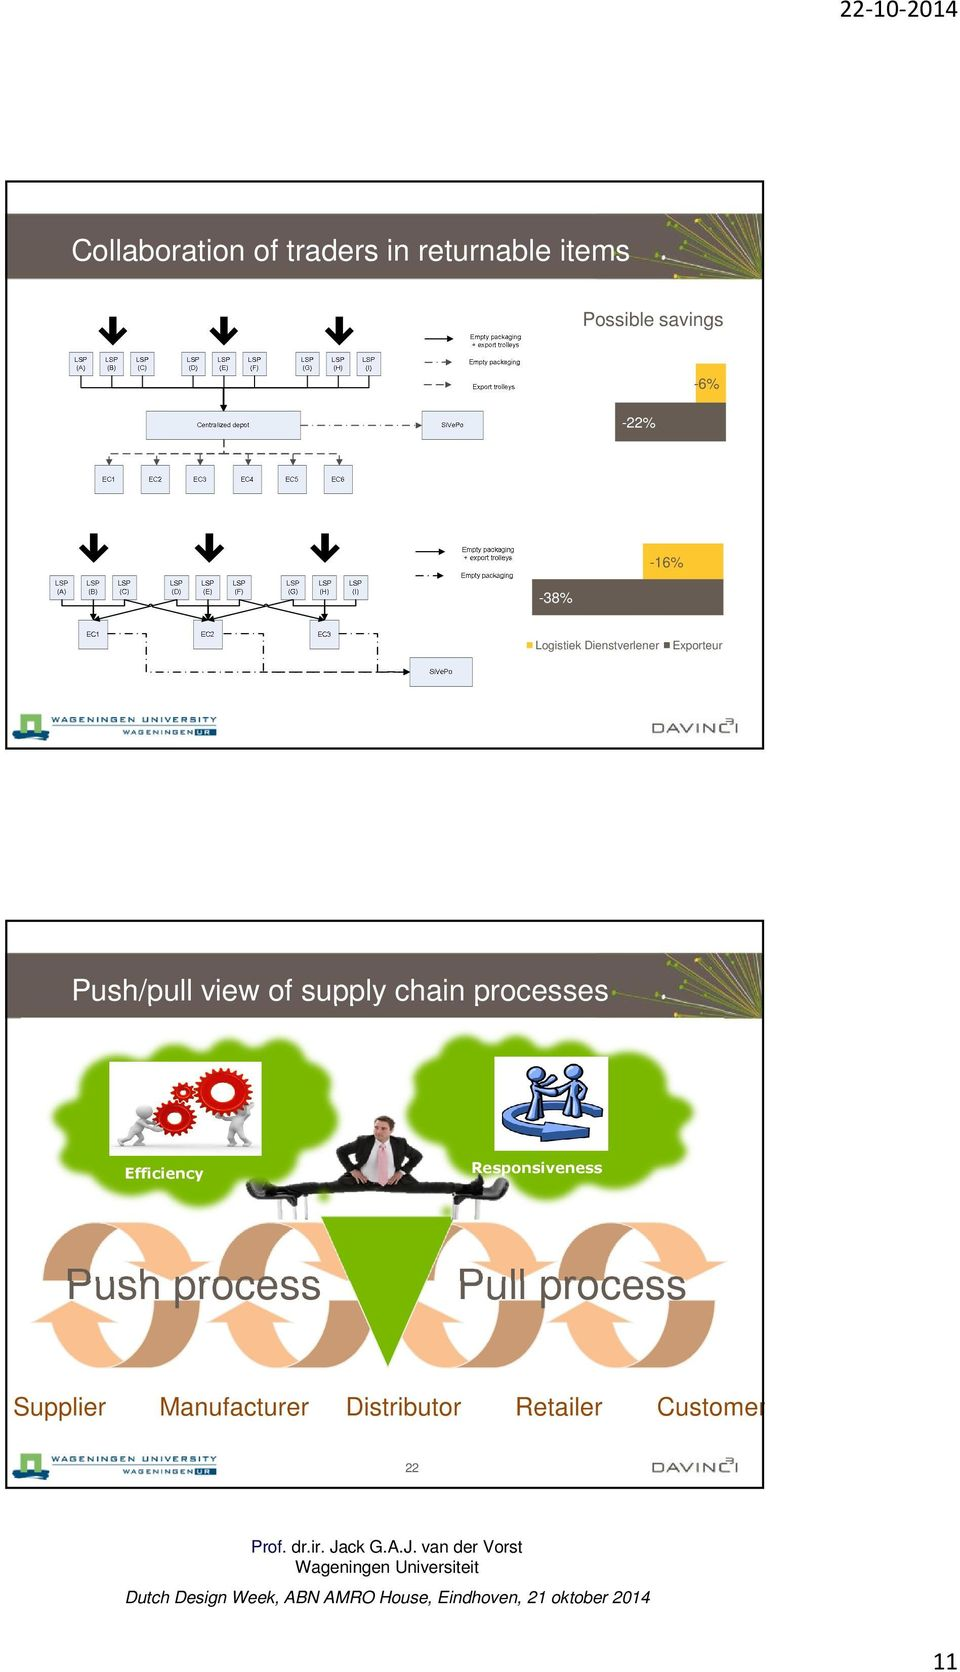 supply chain processes Efficiency Responsiveness Push process Pull